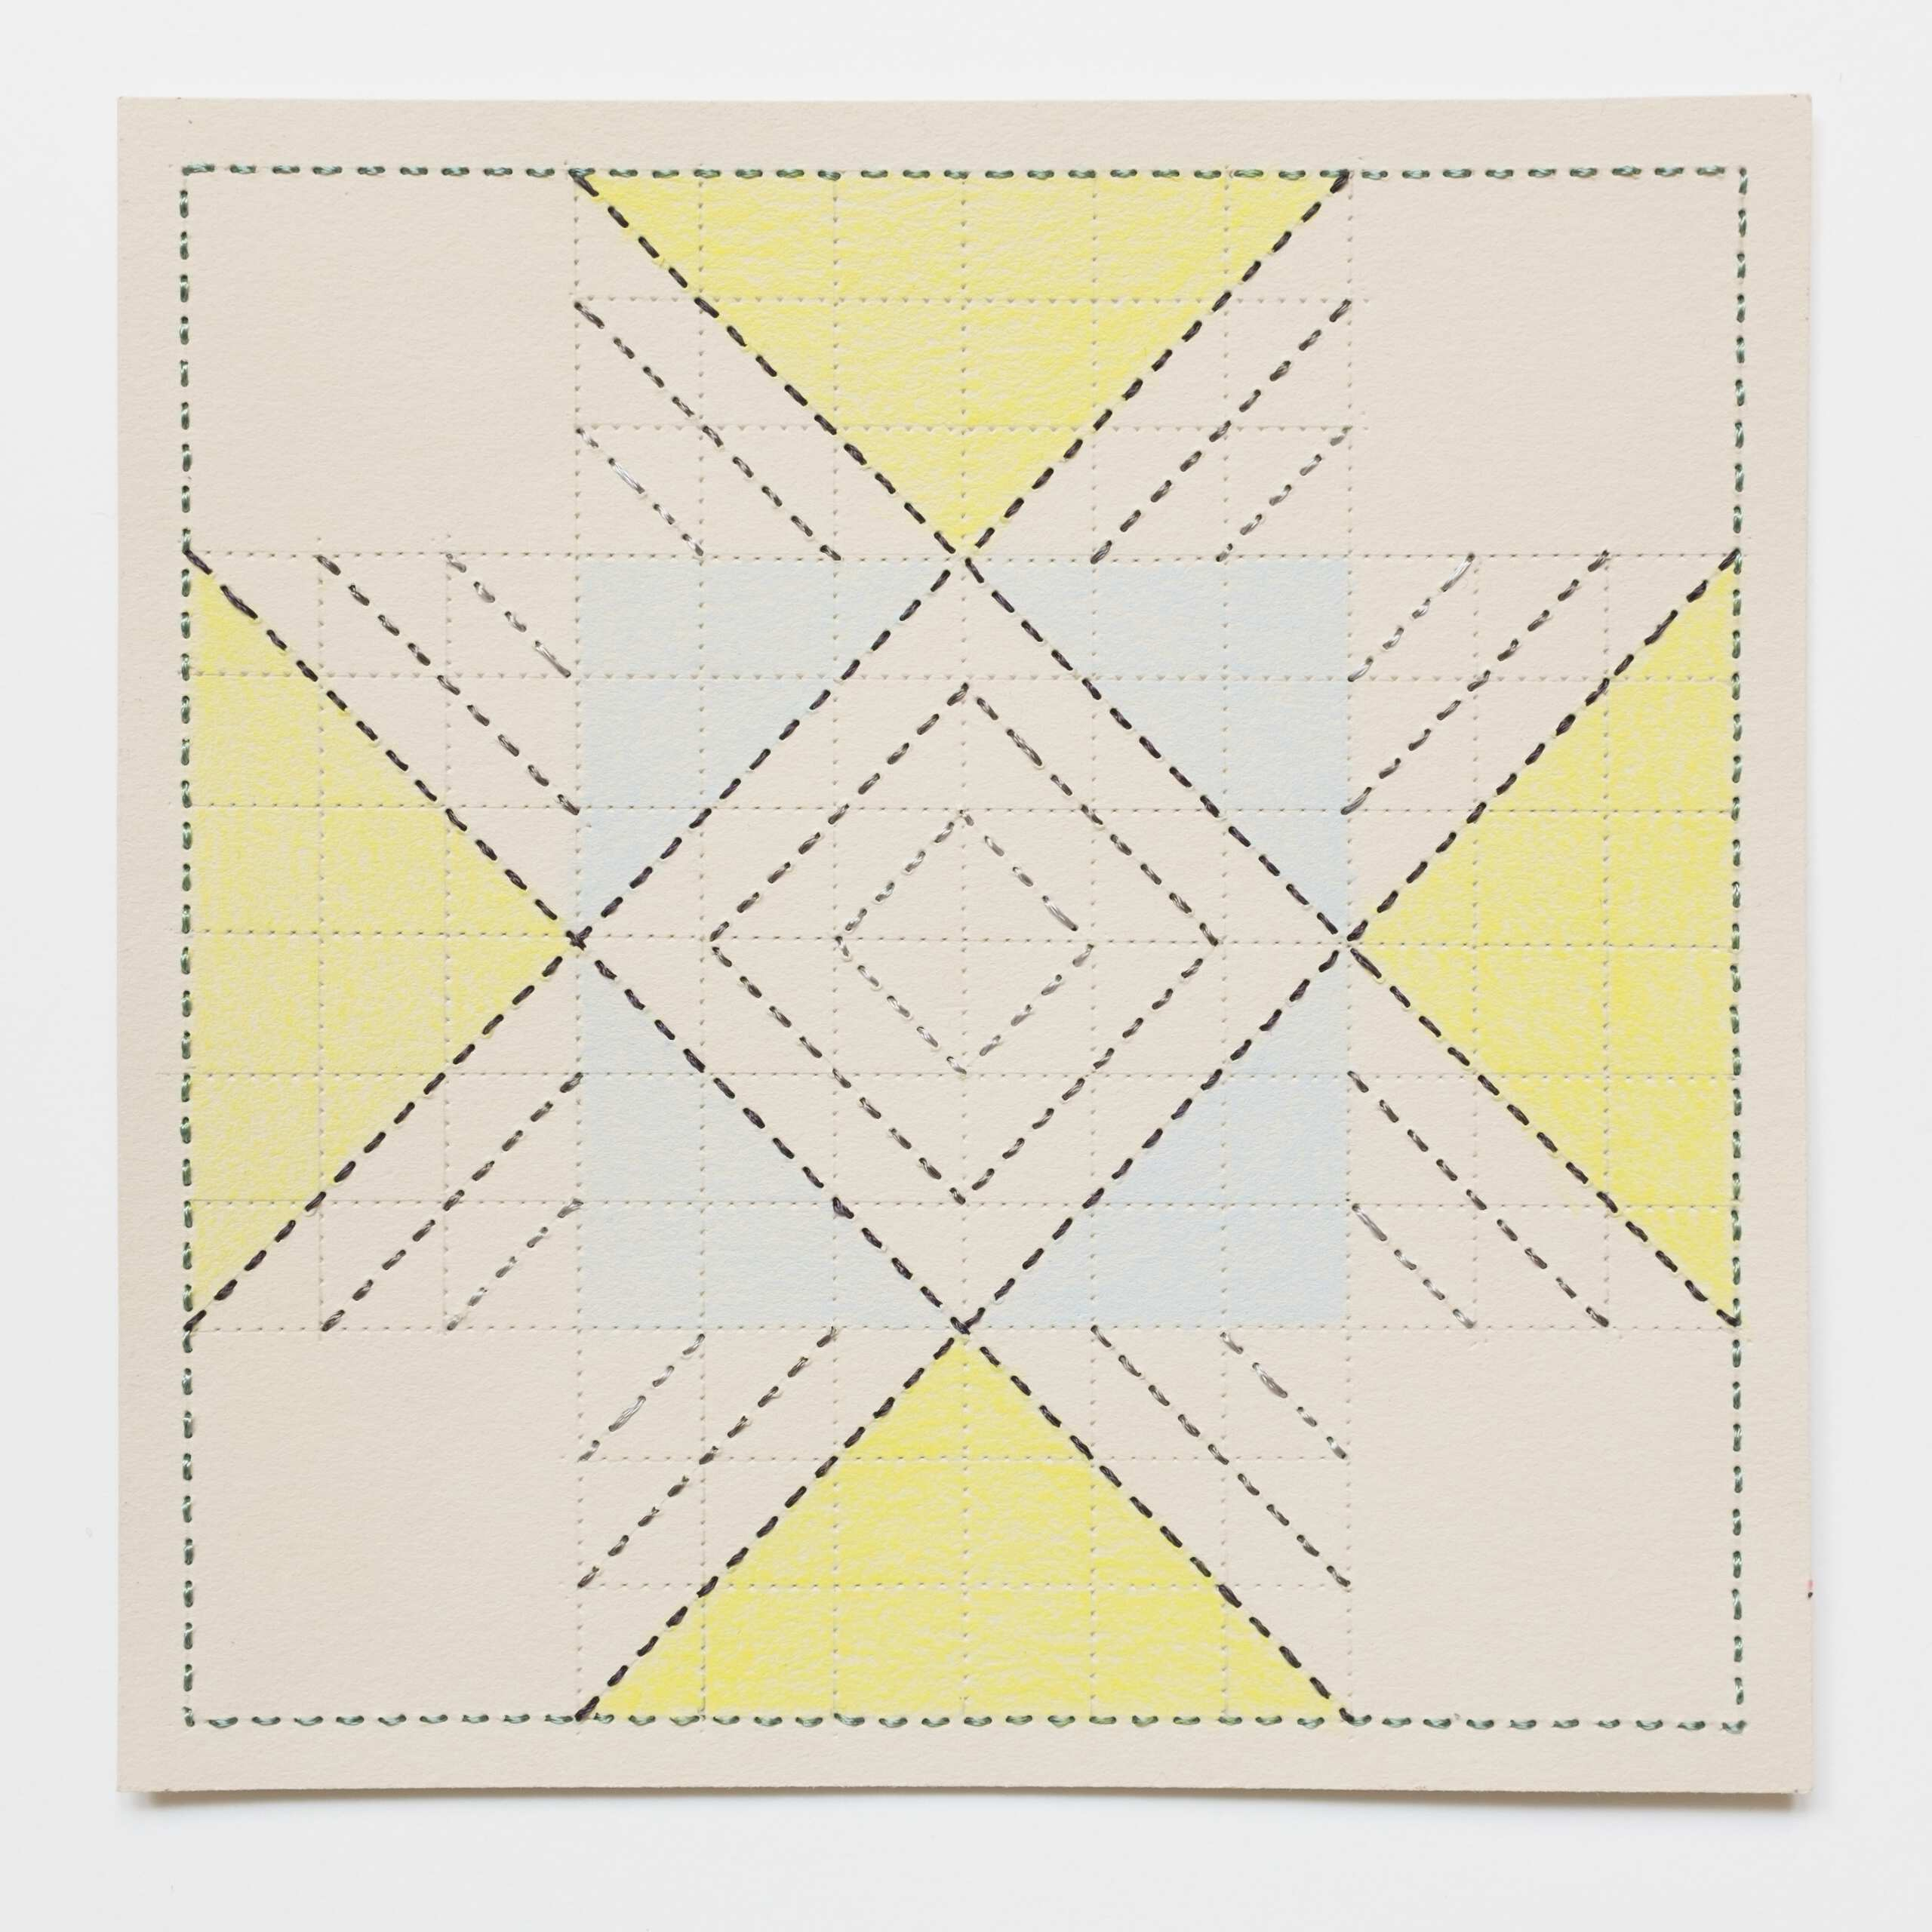 Quilted Composition [grey // squares], Hand-embroidered silk thread, pencil, and coloured pencil on paper, 2019